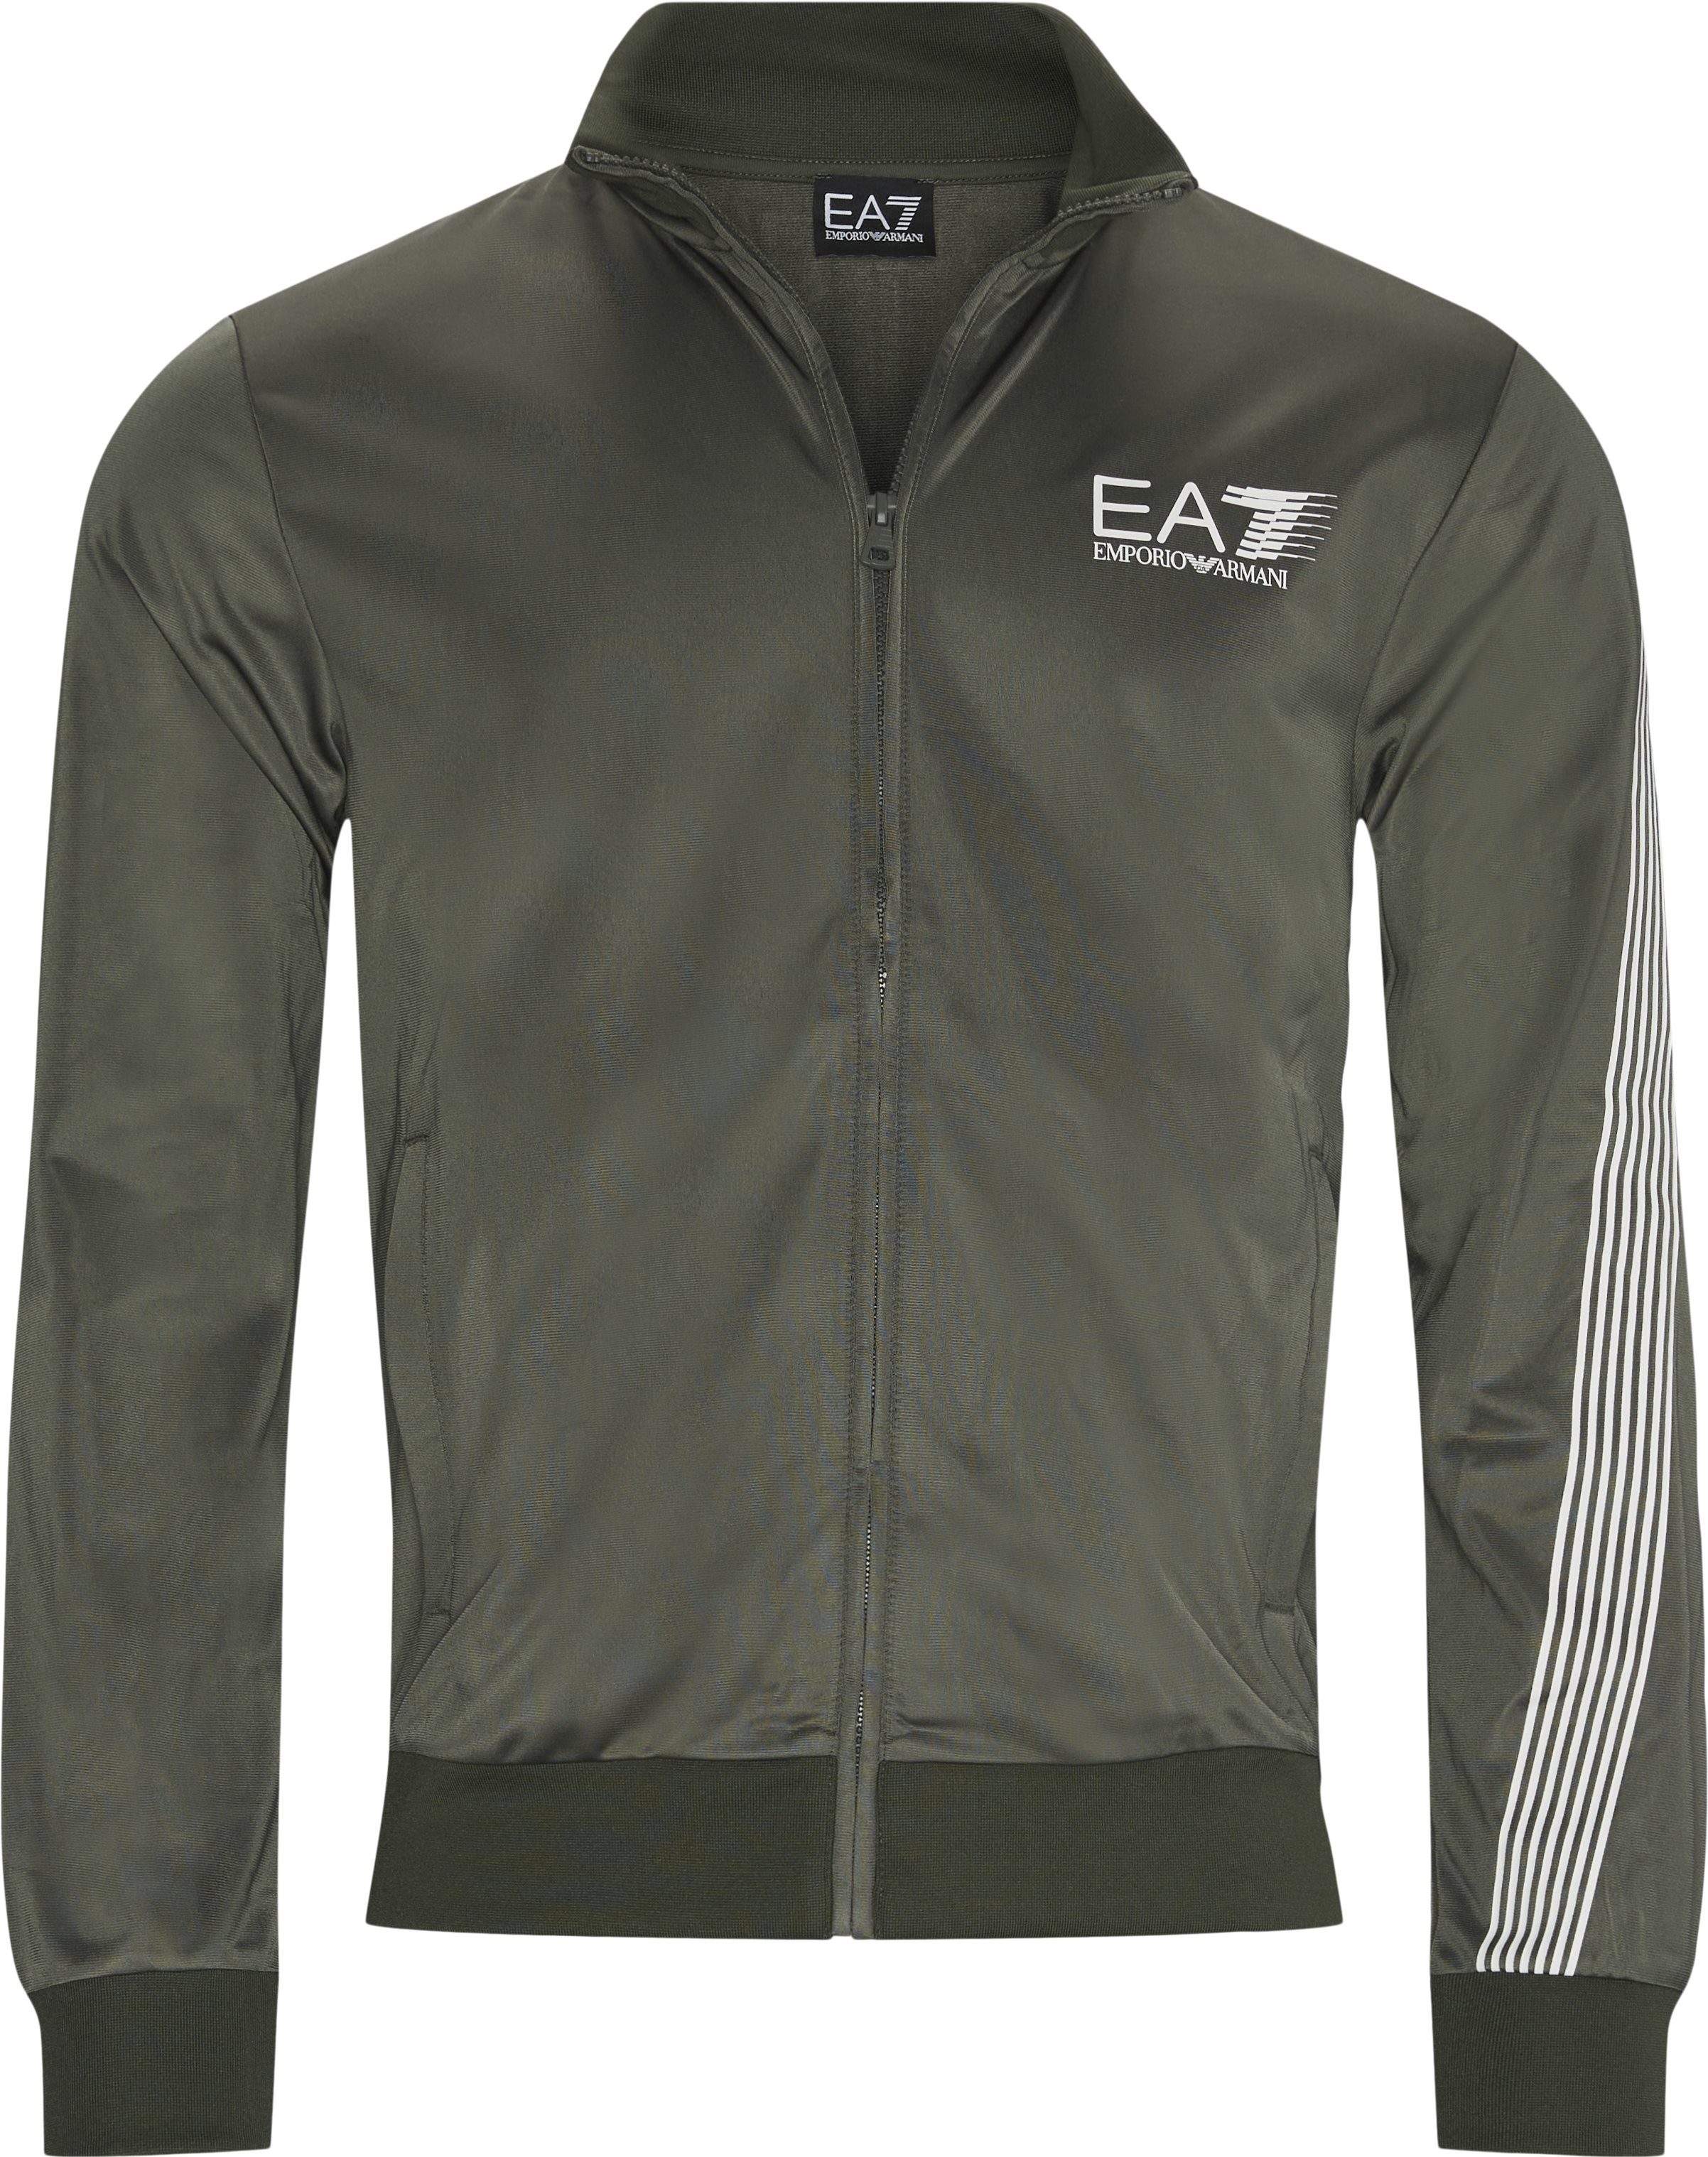 Pj08z  Zip Sweatshirt - Sweatshirts - Regular - Army